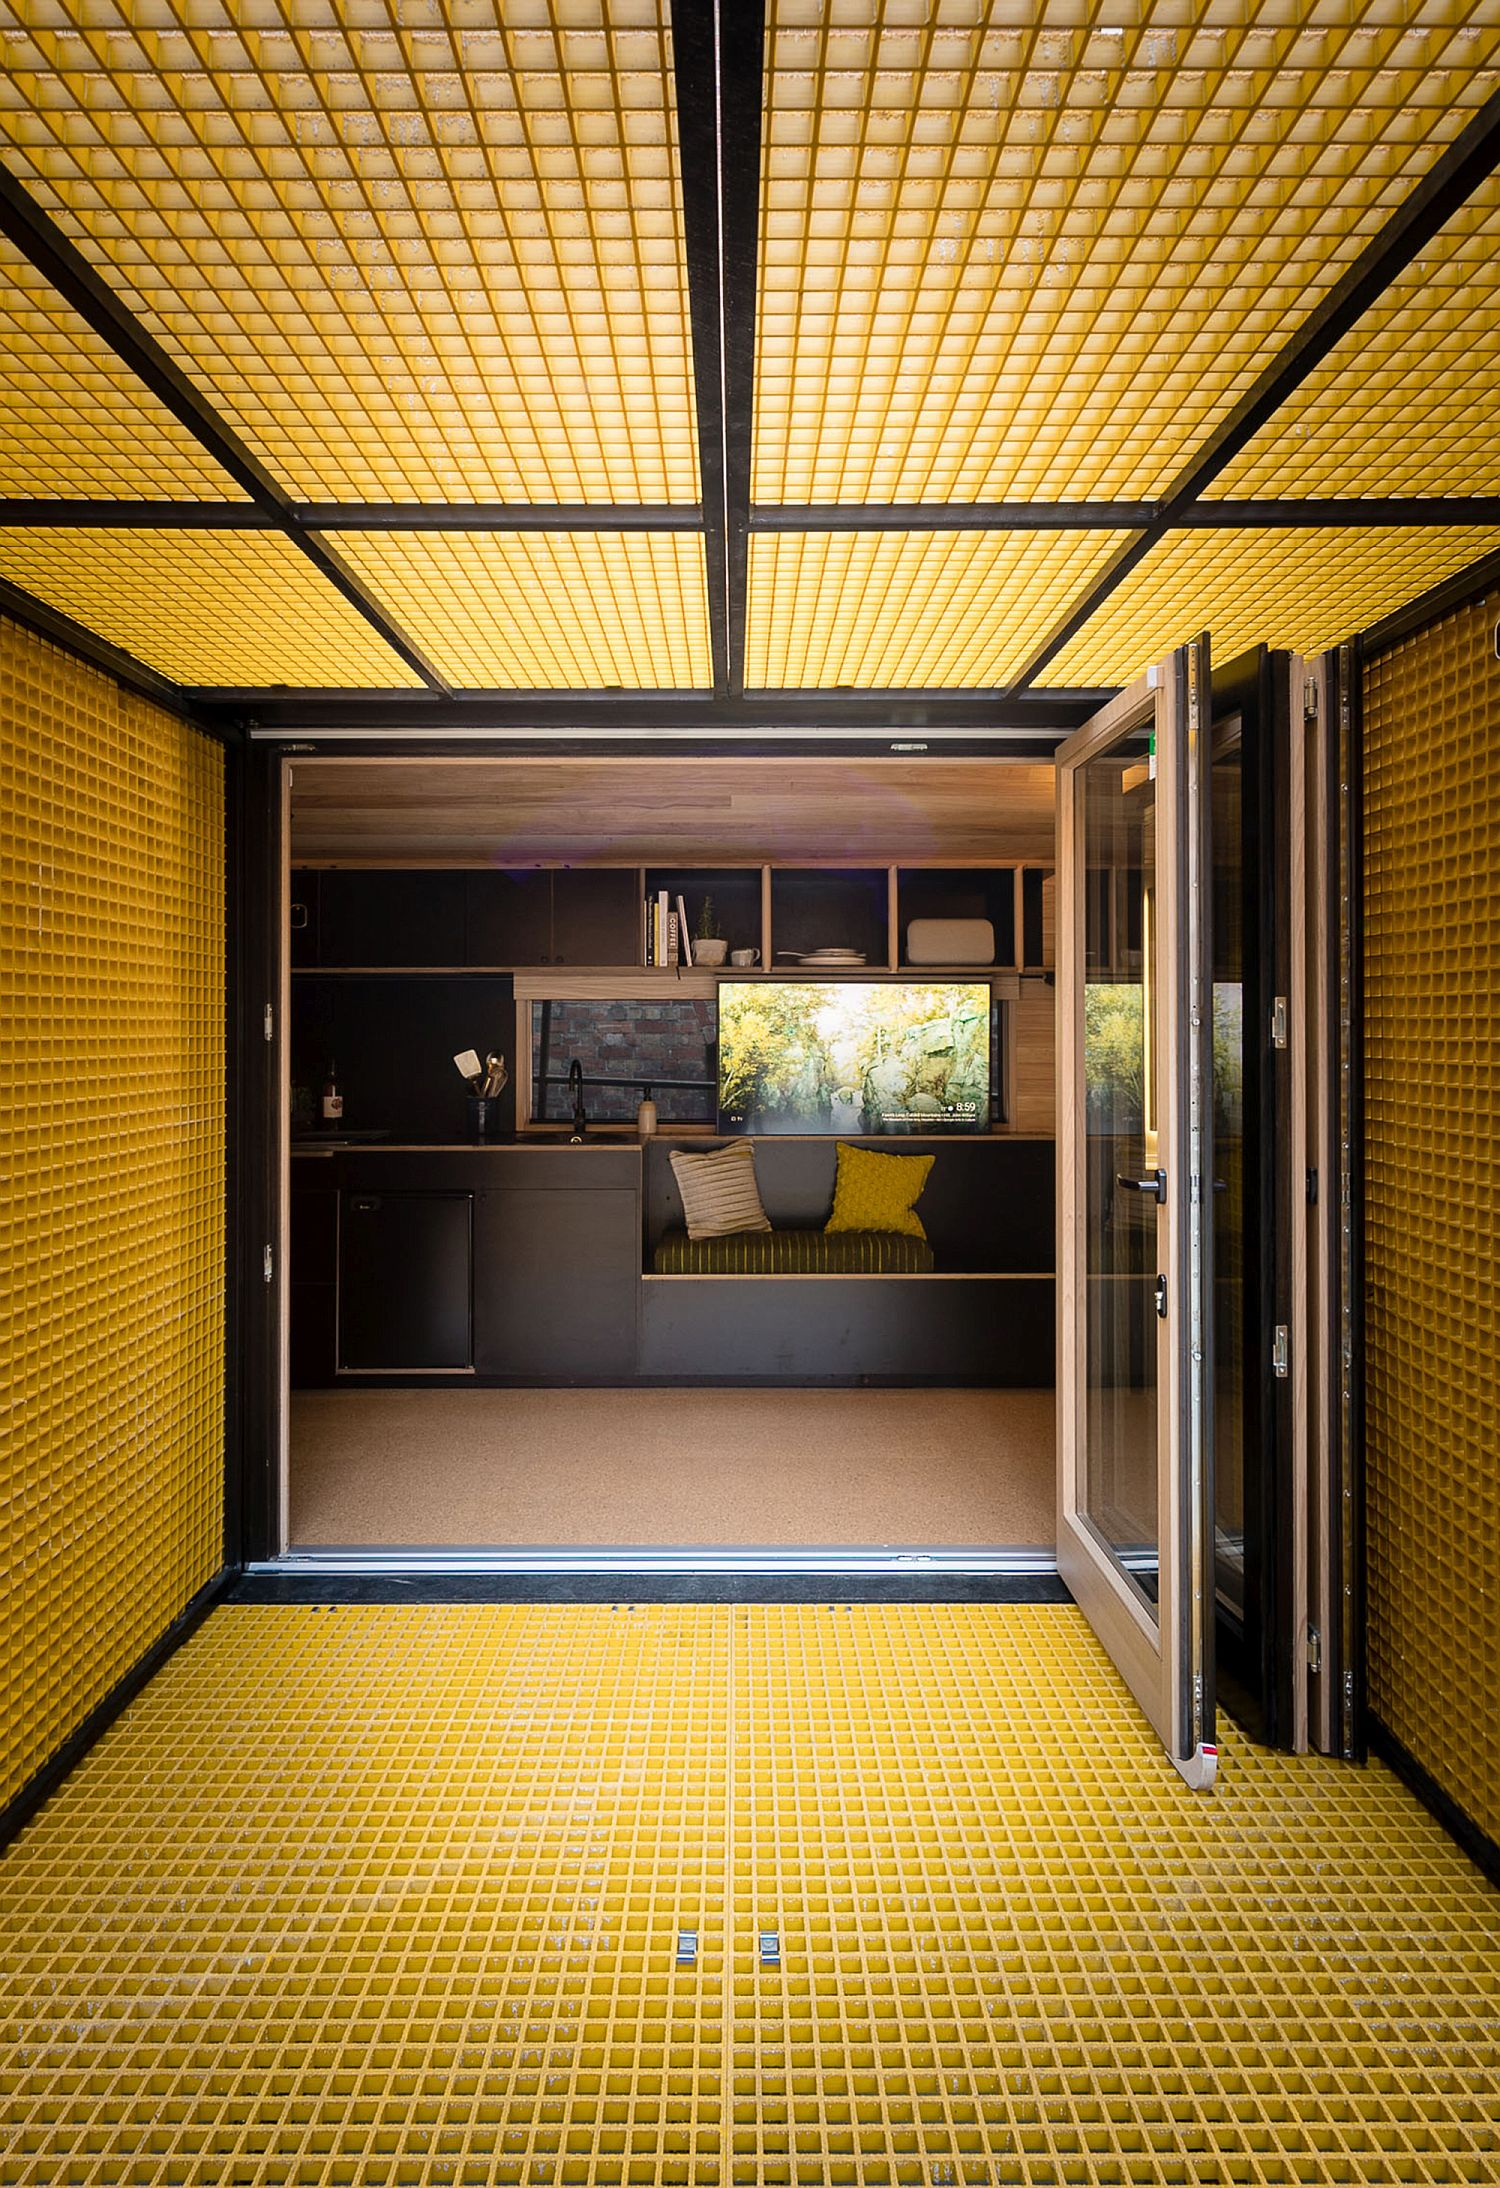 Gridded yellow panels create unique sun shades which can be lowered using automated hydraulics